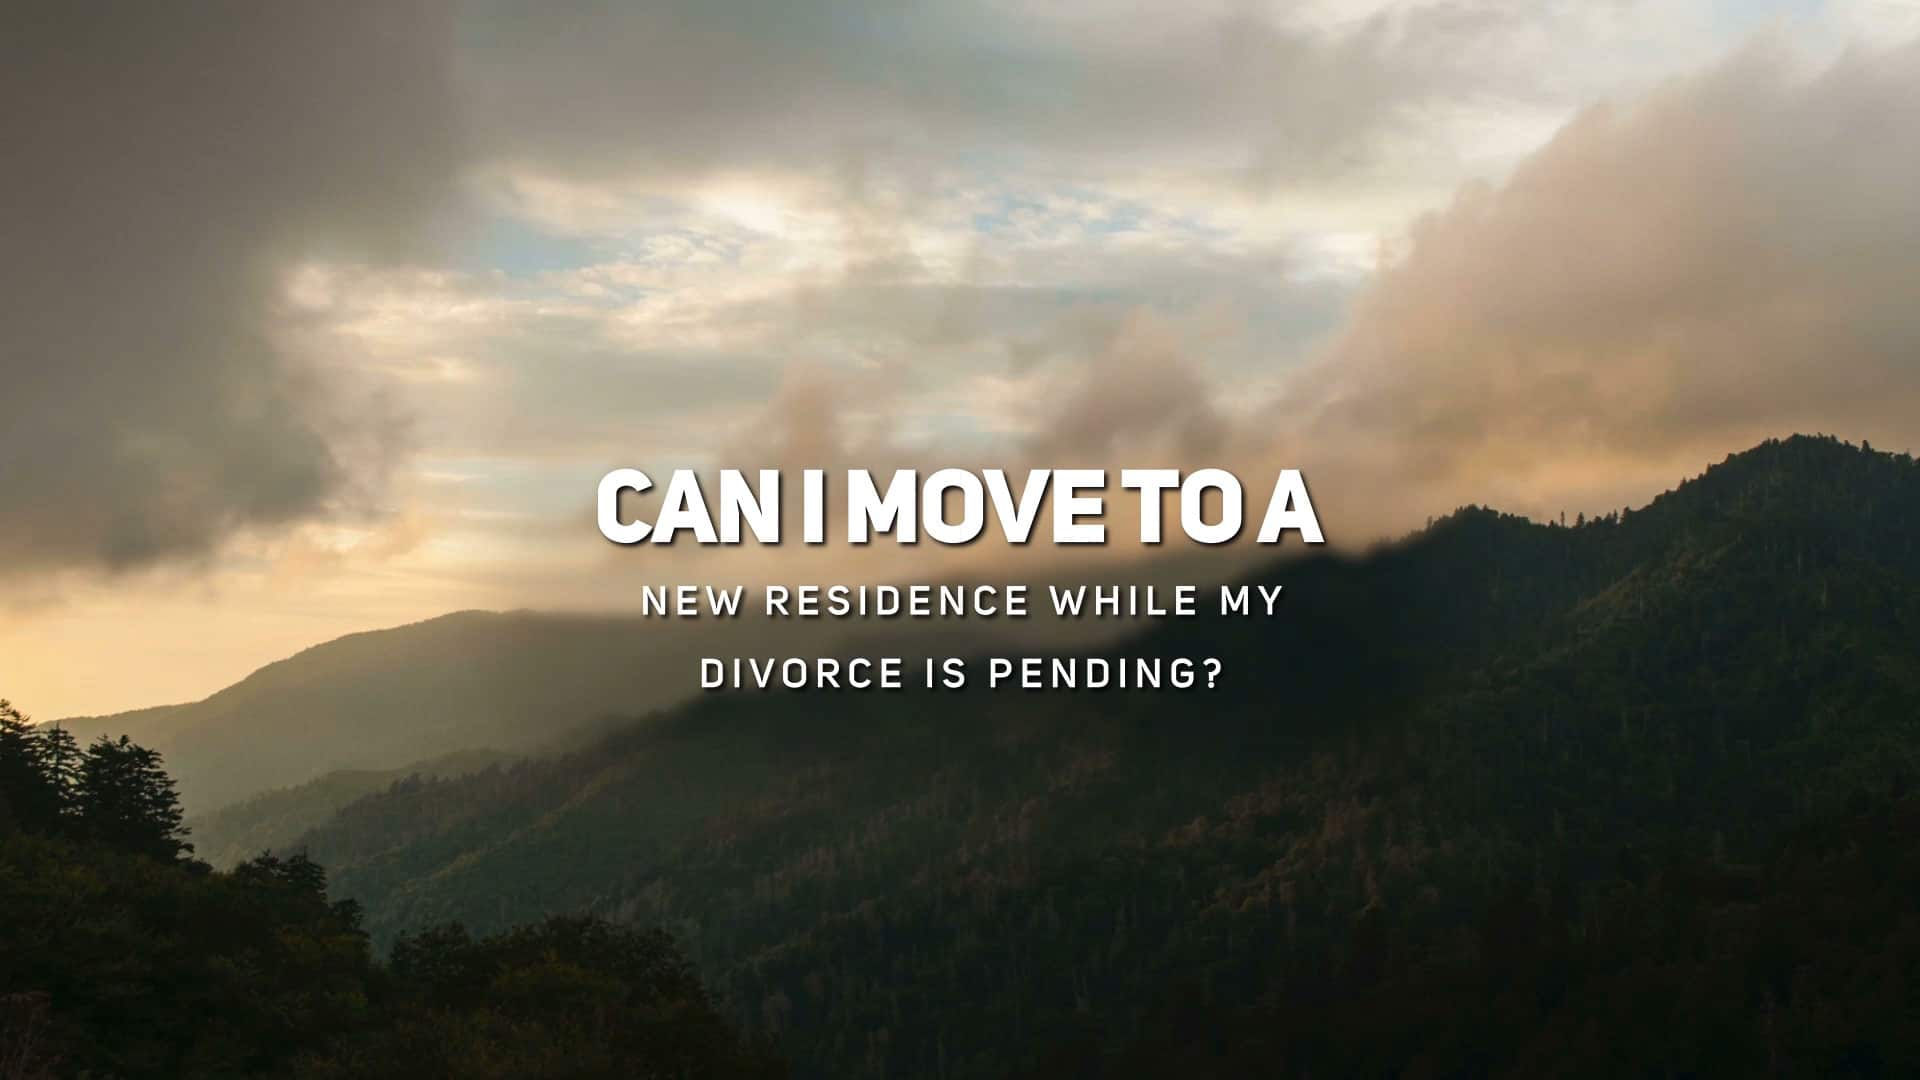 Can I Move to a New Residence While My Divorce is Pending